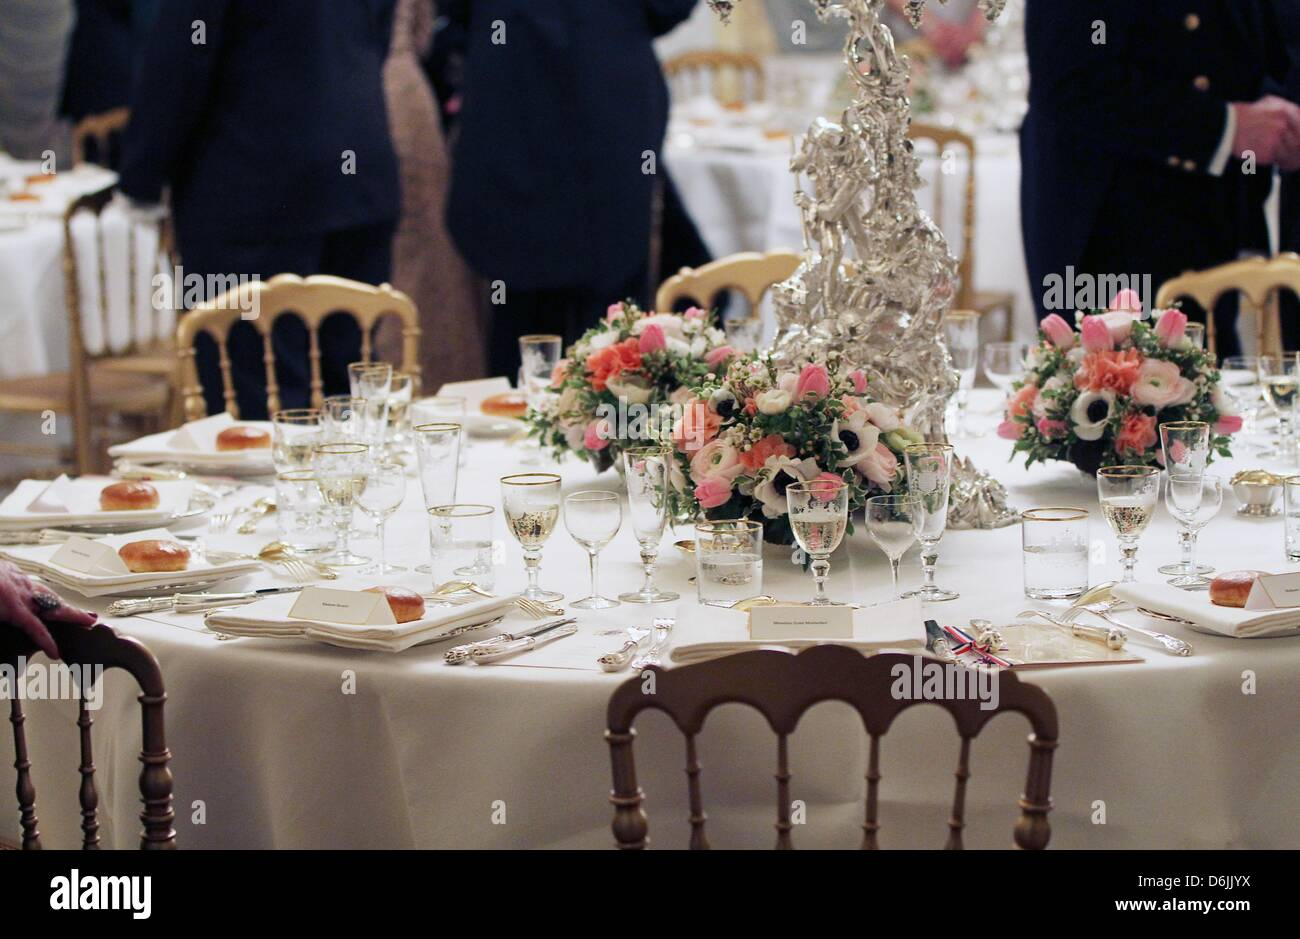 Table Luxembourg The Table Prior To The Official Dinner With Queen Beatrix At The